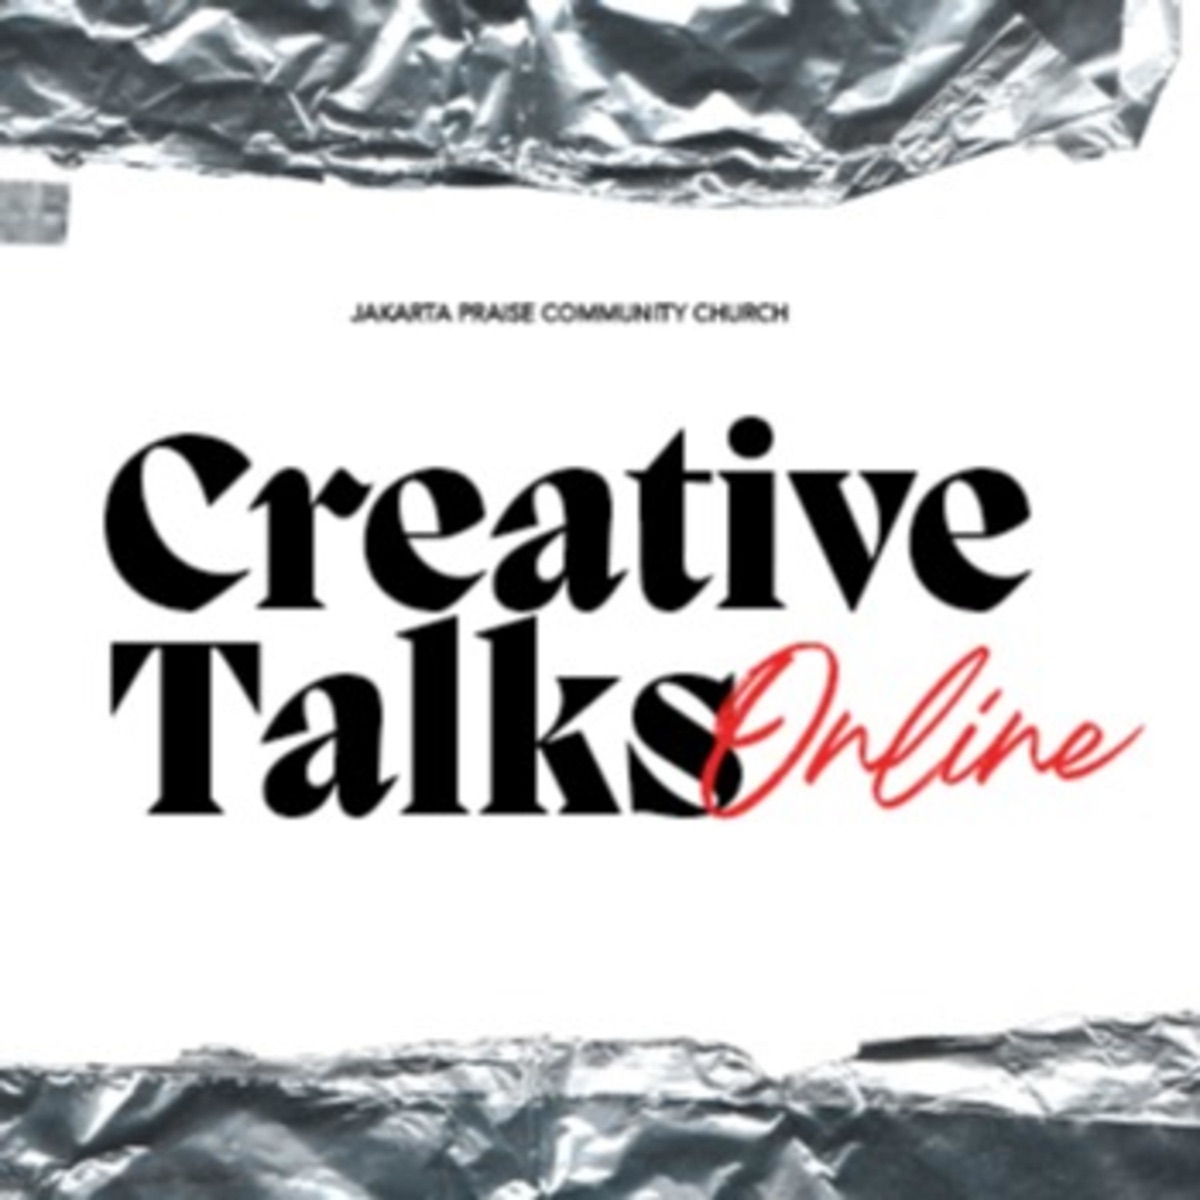 JPCC Creative Talks